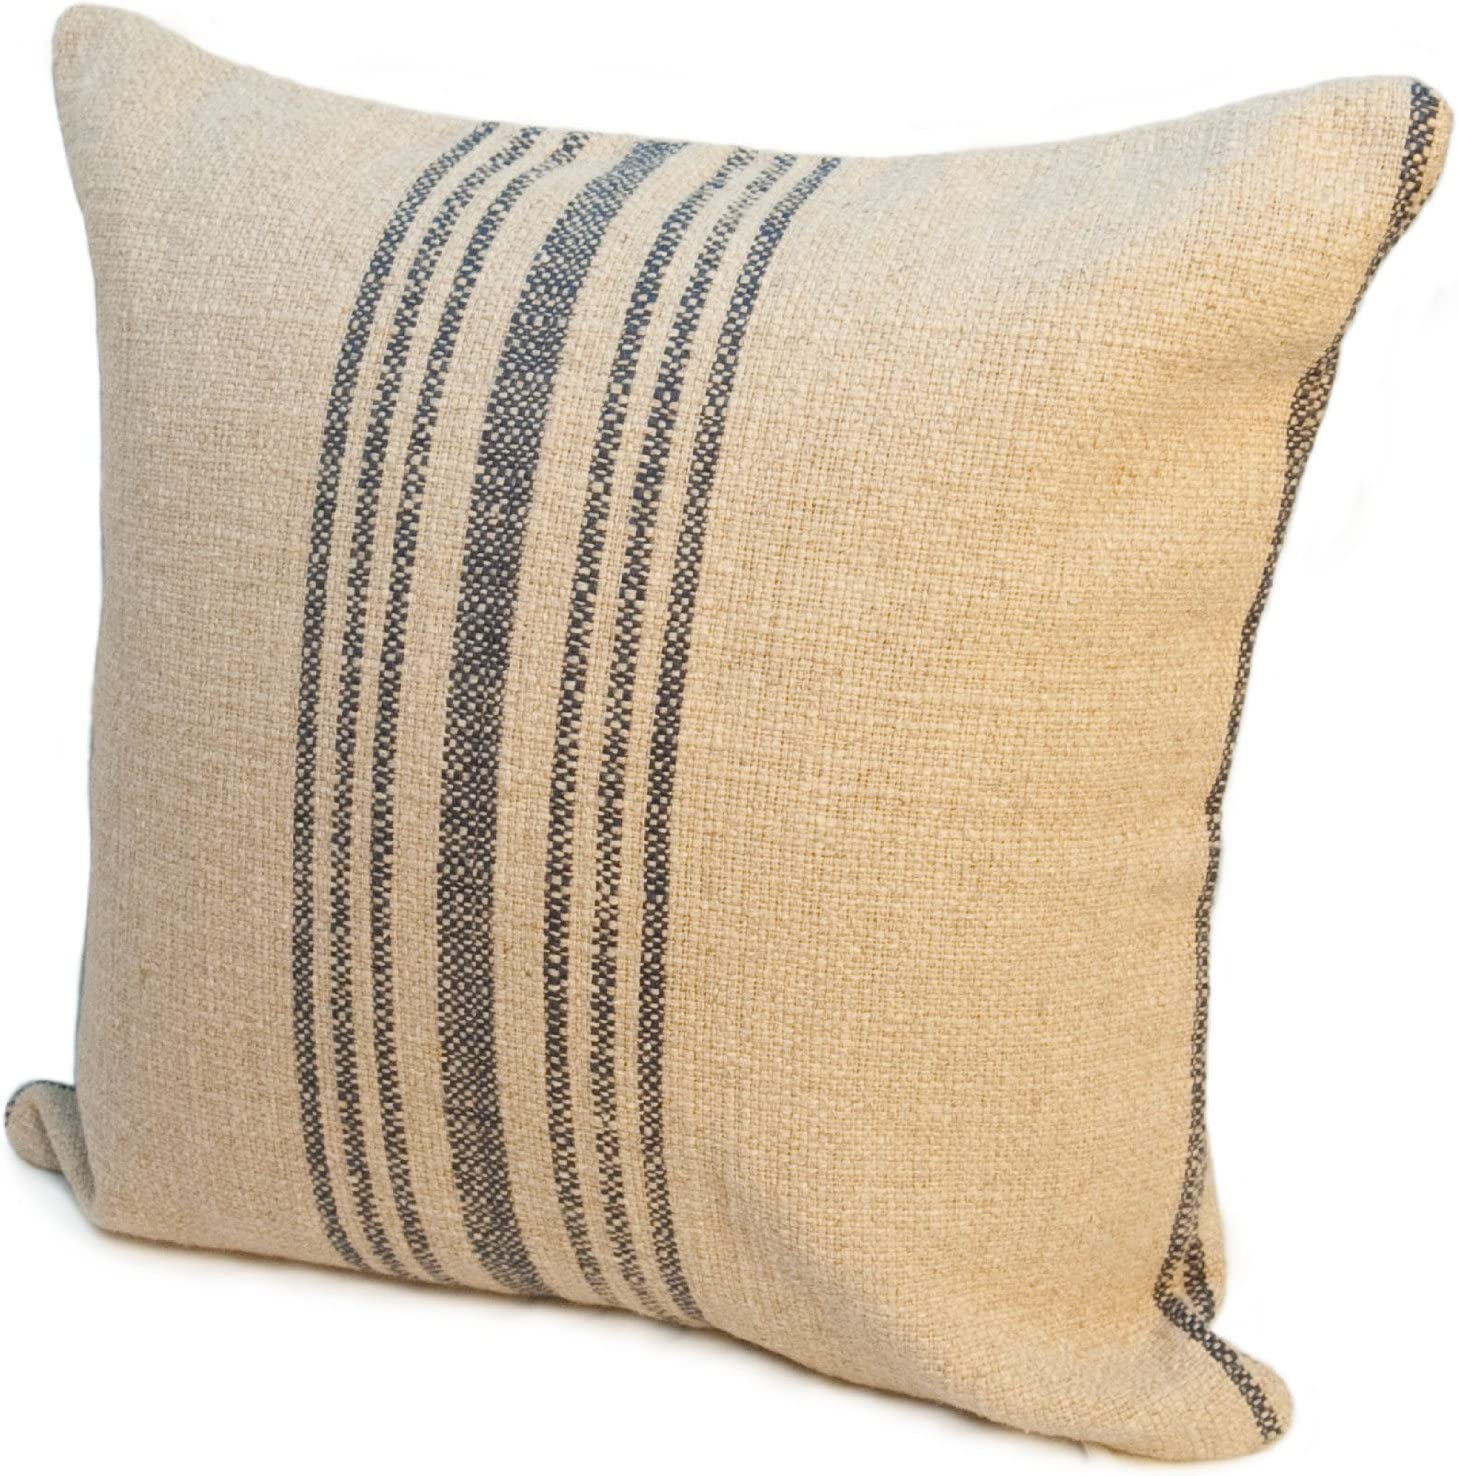 Red 24 Inch Rennie Rose Bernard Stripe Throw Pillow Home Kitchen Decorative Pillows Inserts Covers